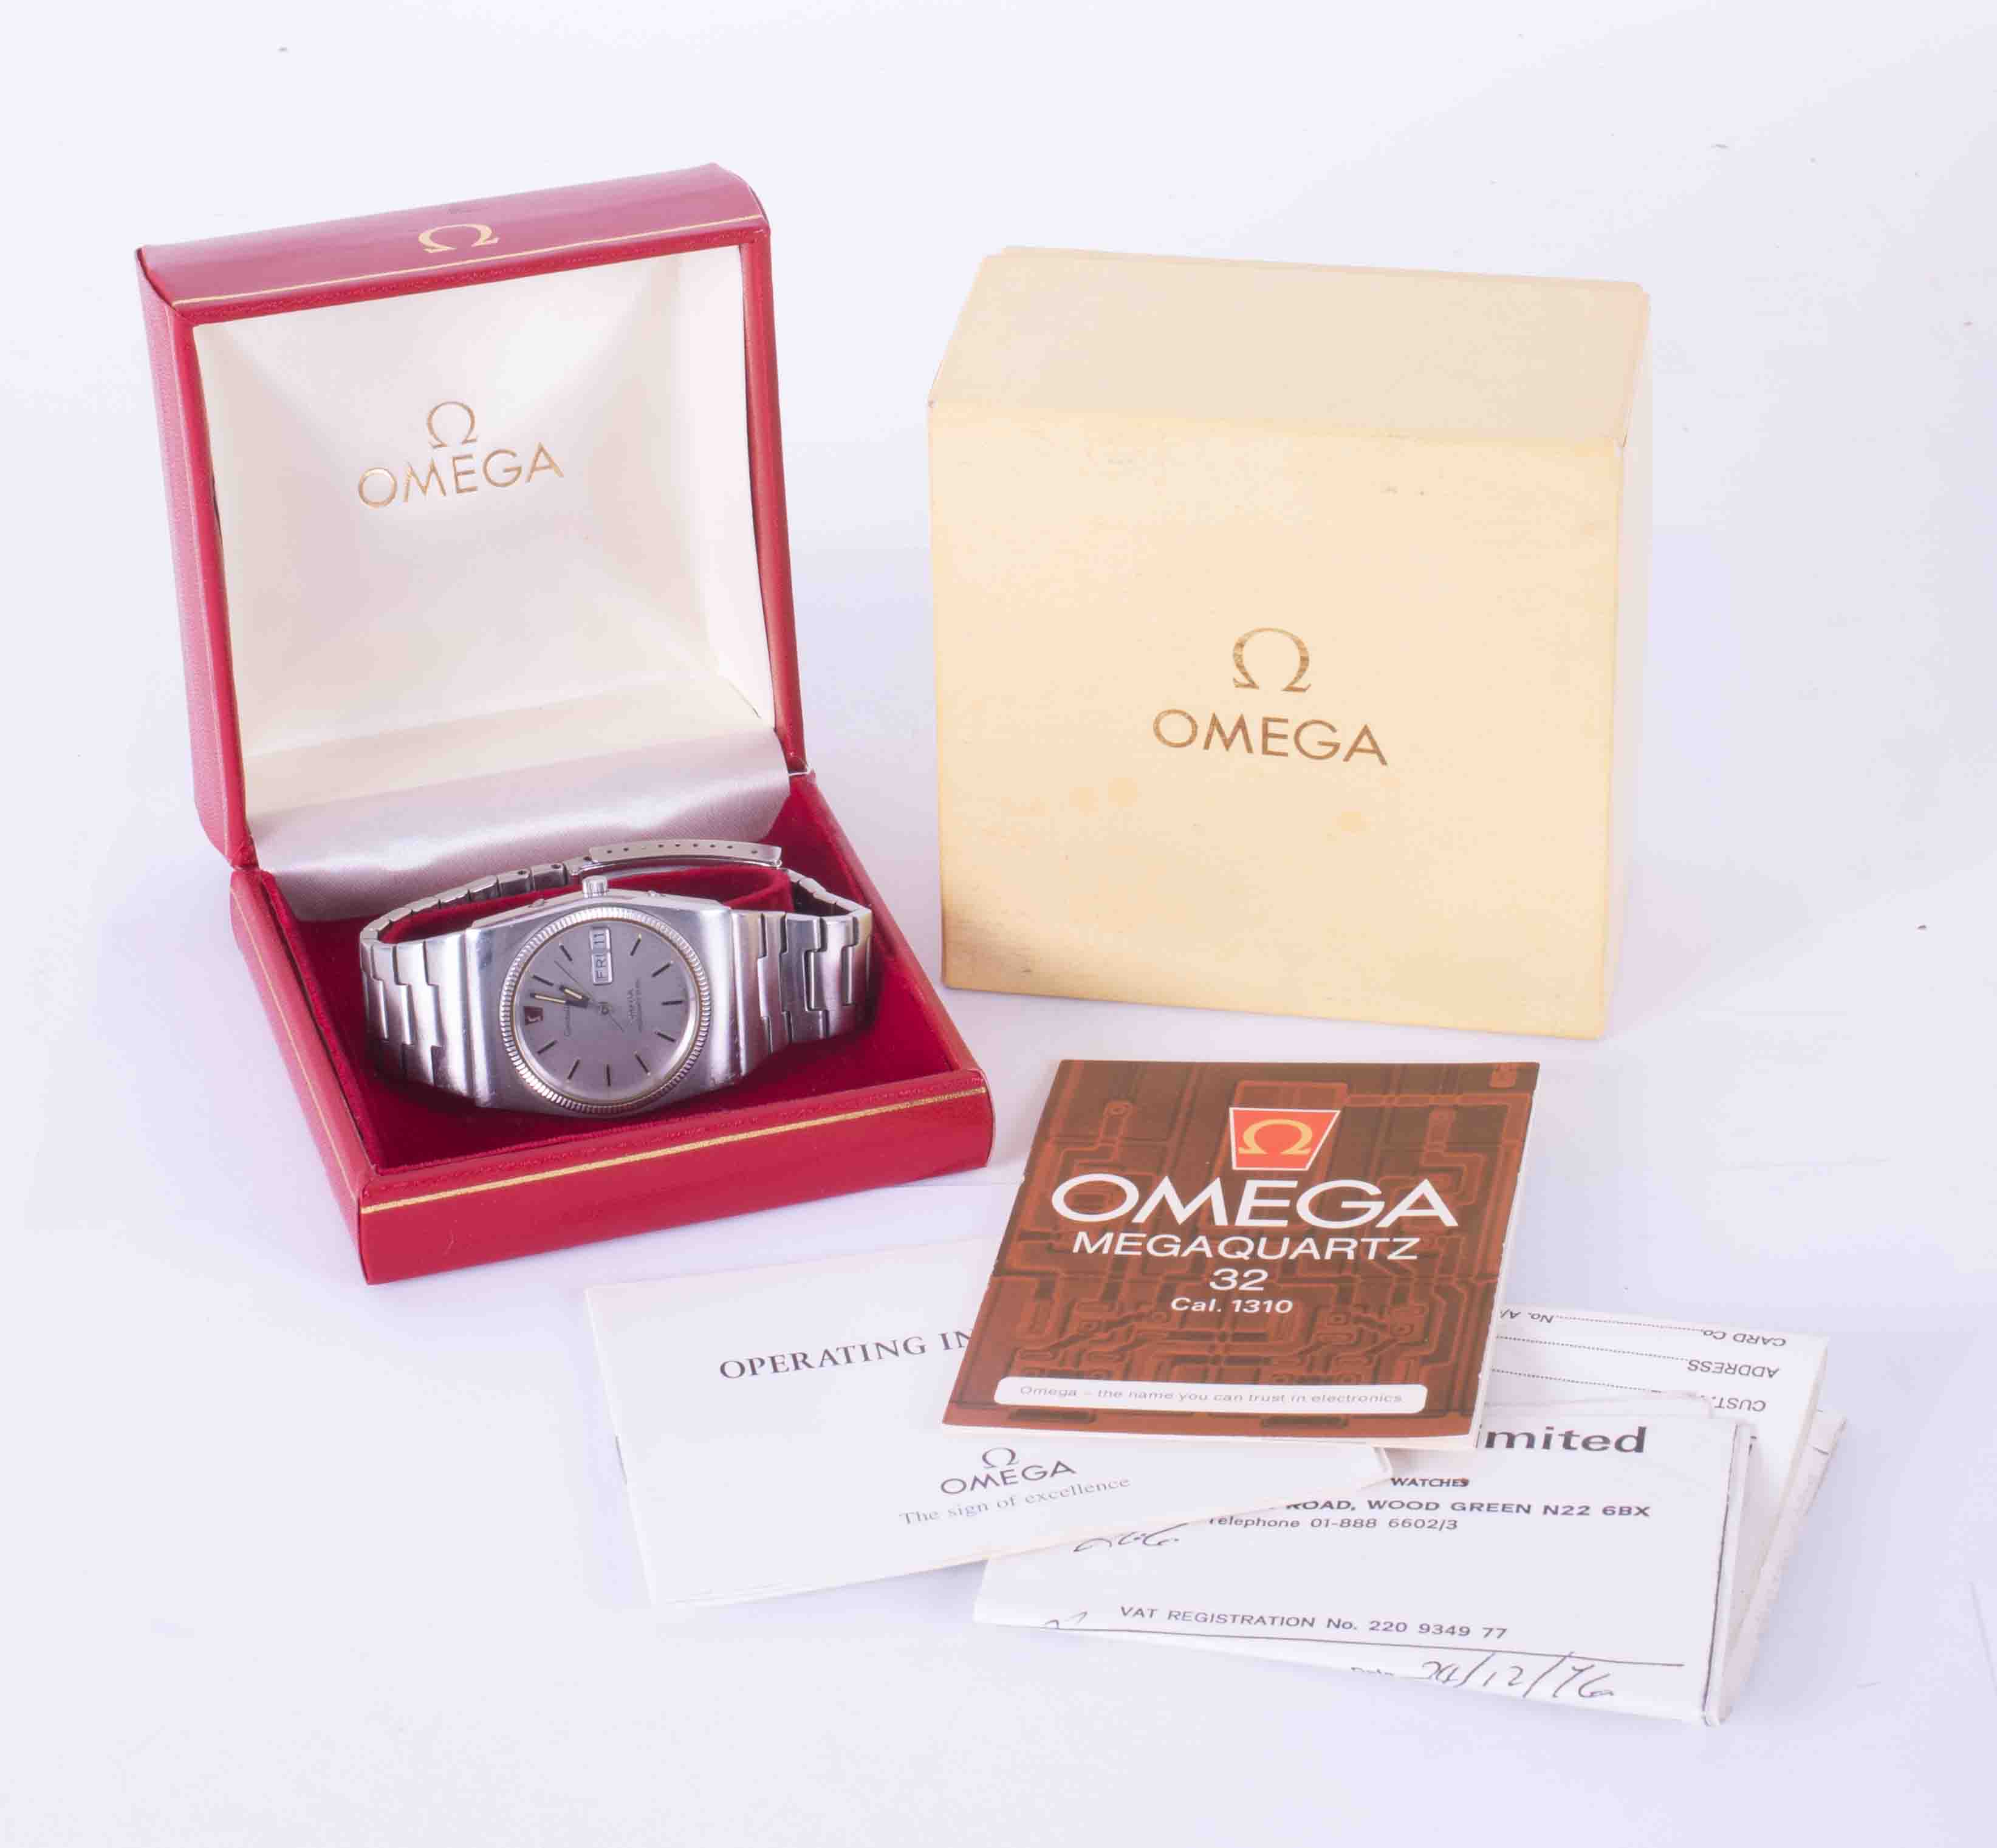 Omega, a gents stainless steel Constellation wristwatch, mega quartz, 196.0030, with original box, - Image 2 of 3